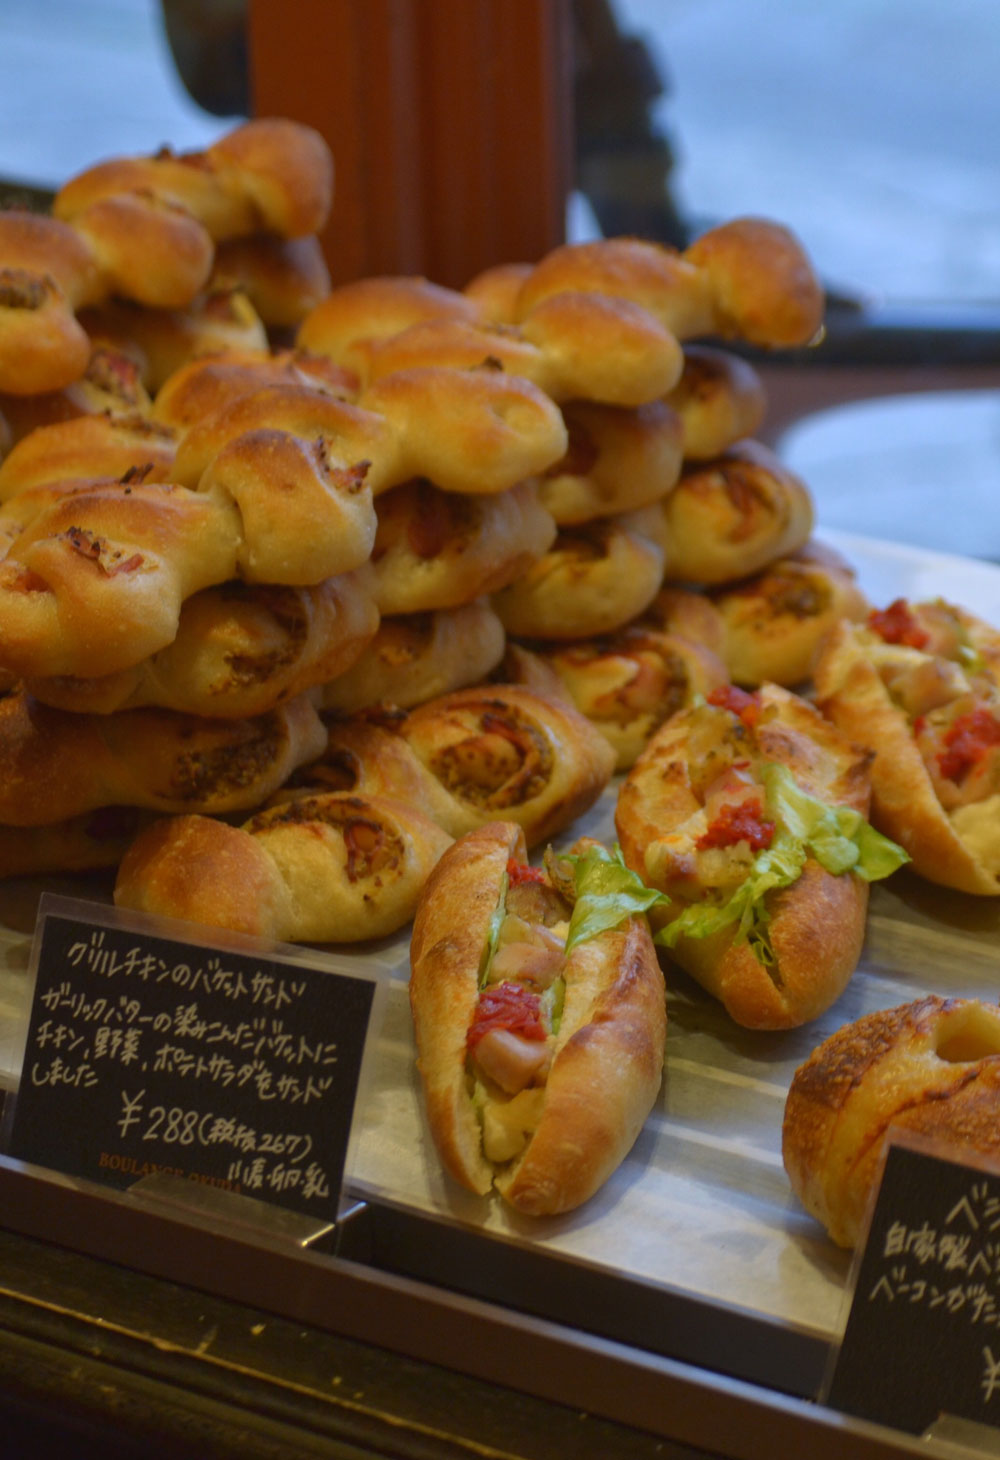 Baked treats in a bakery in Kyoto, Japan